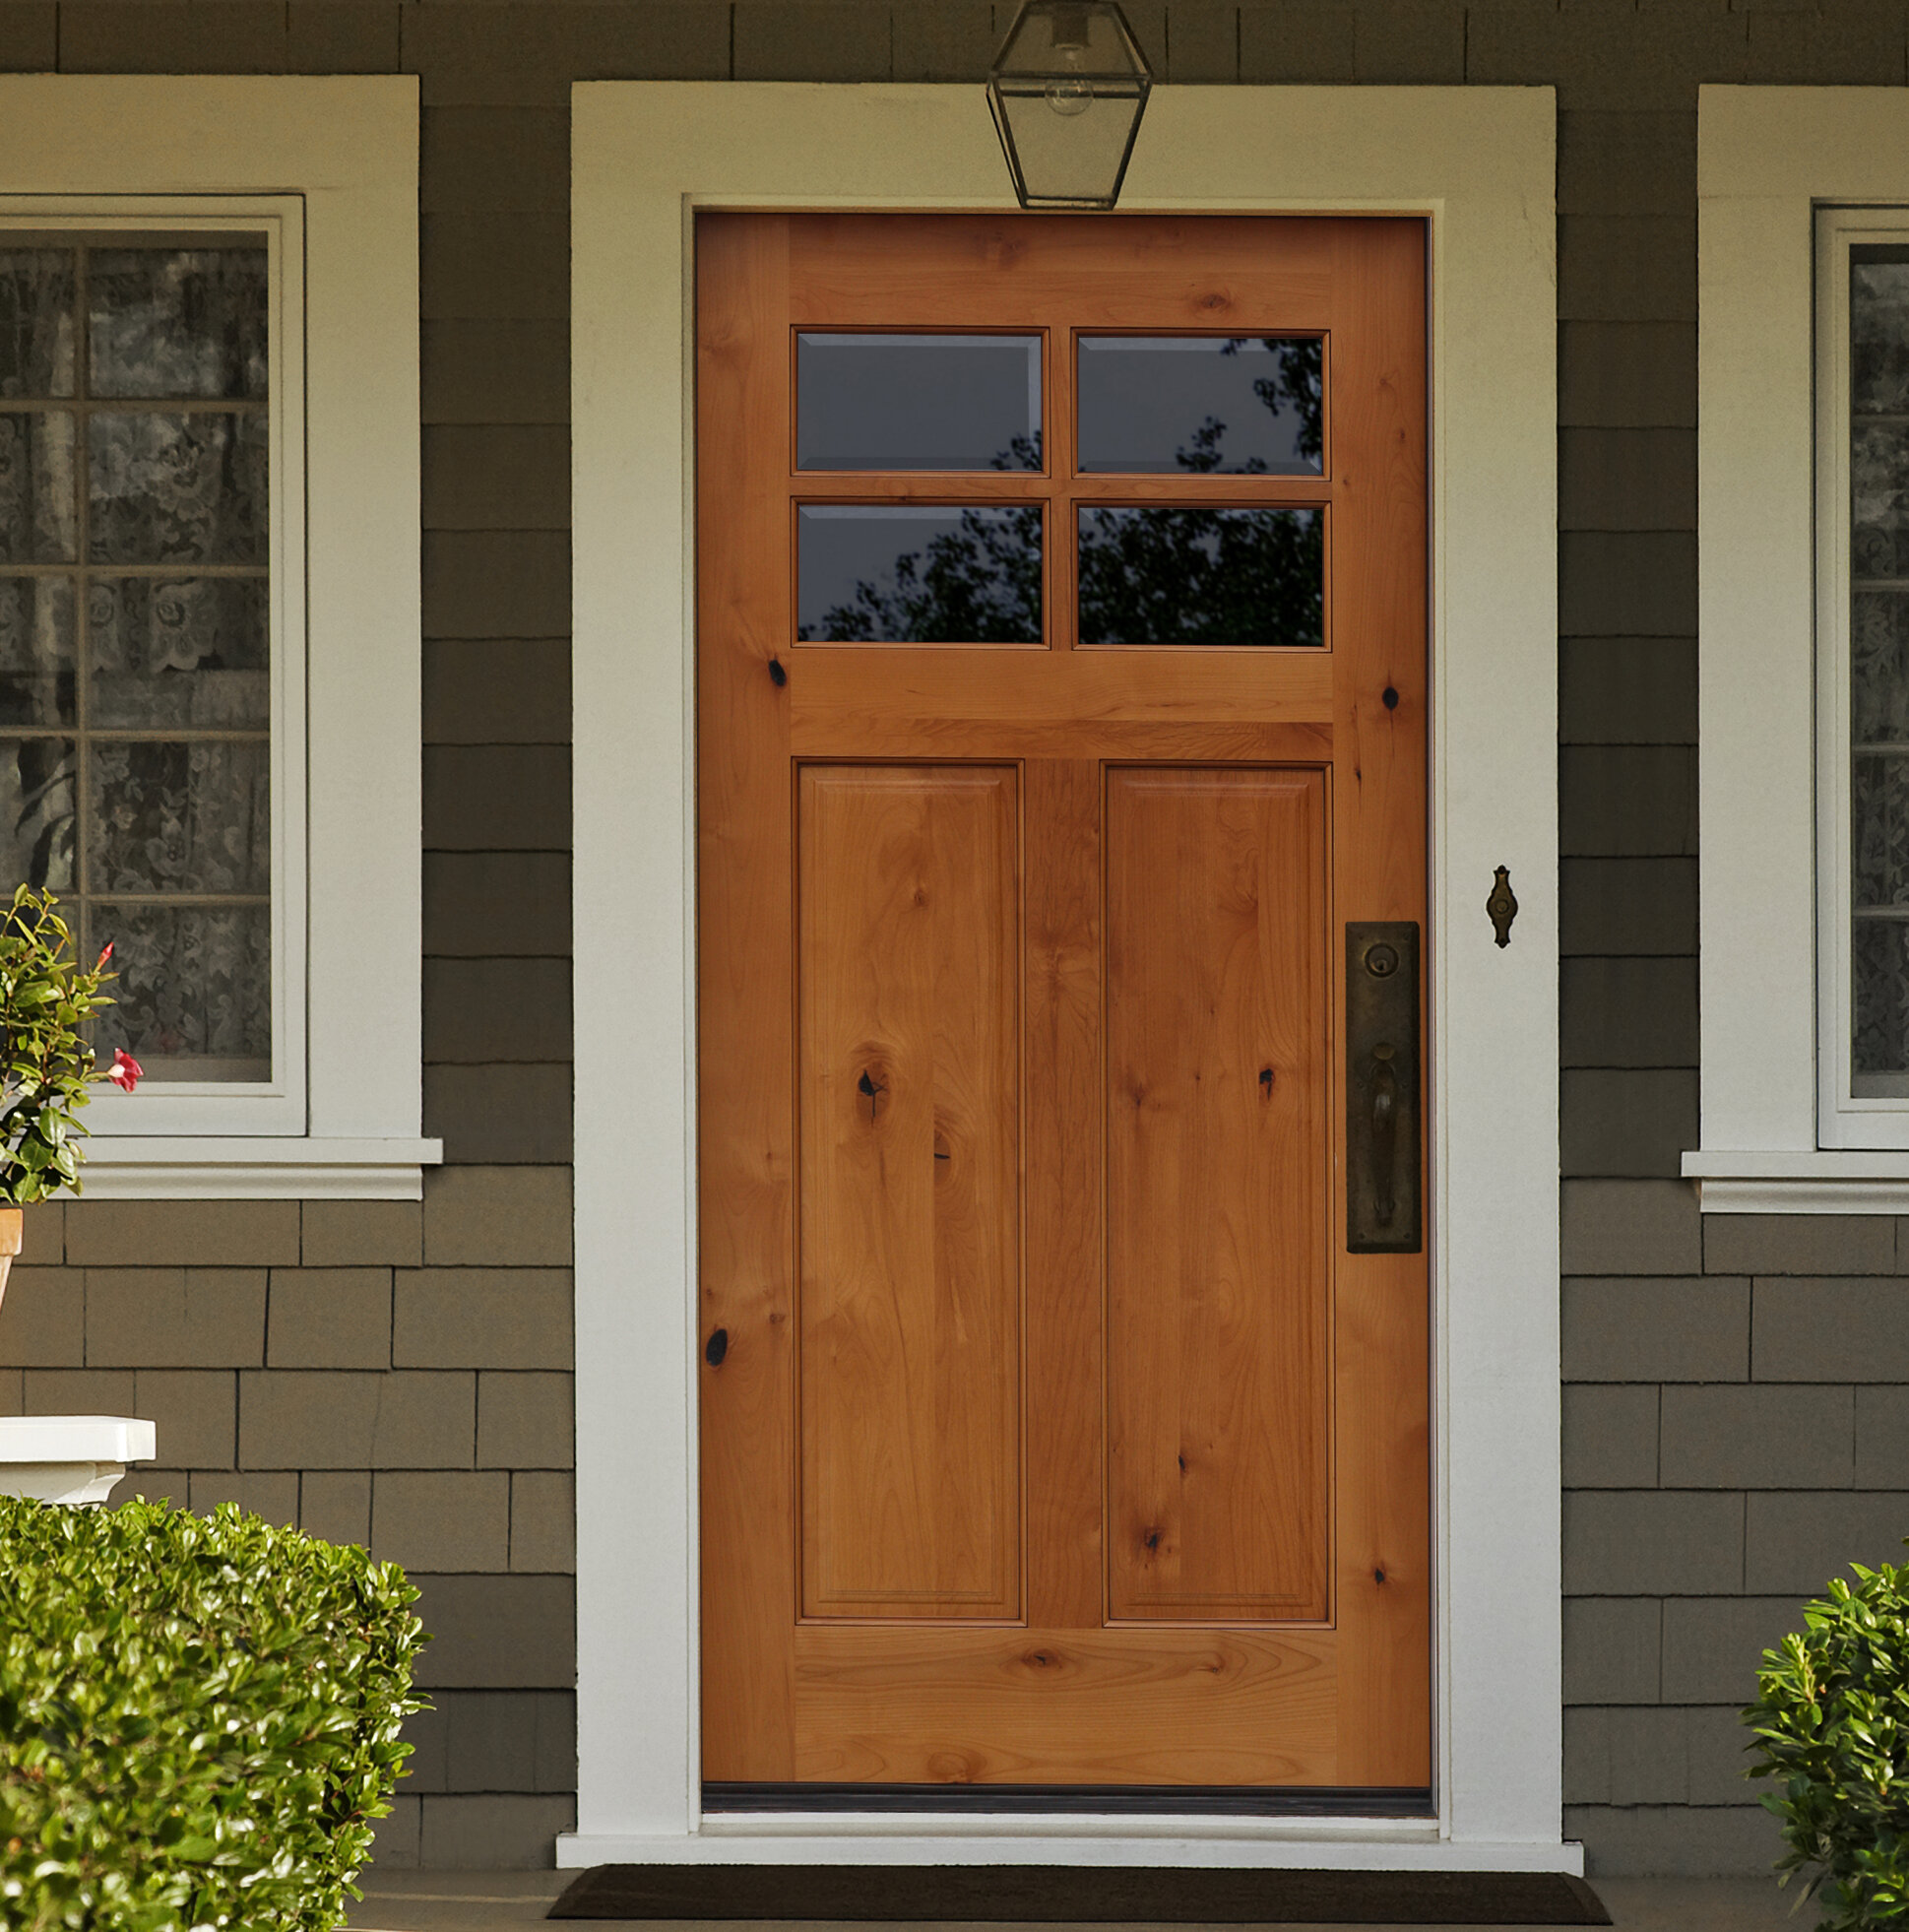 Beau Shaker Craftsman 4 Lite Beveled Ready To Install Wood Prehung Front Entry  Door